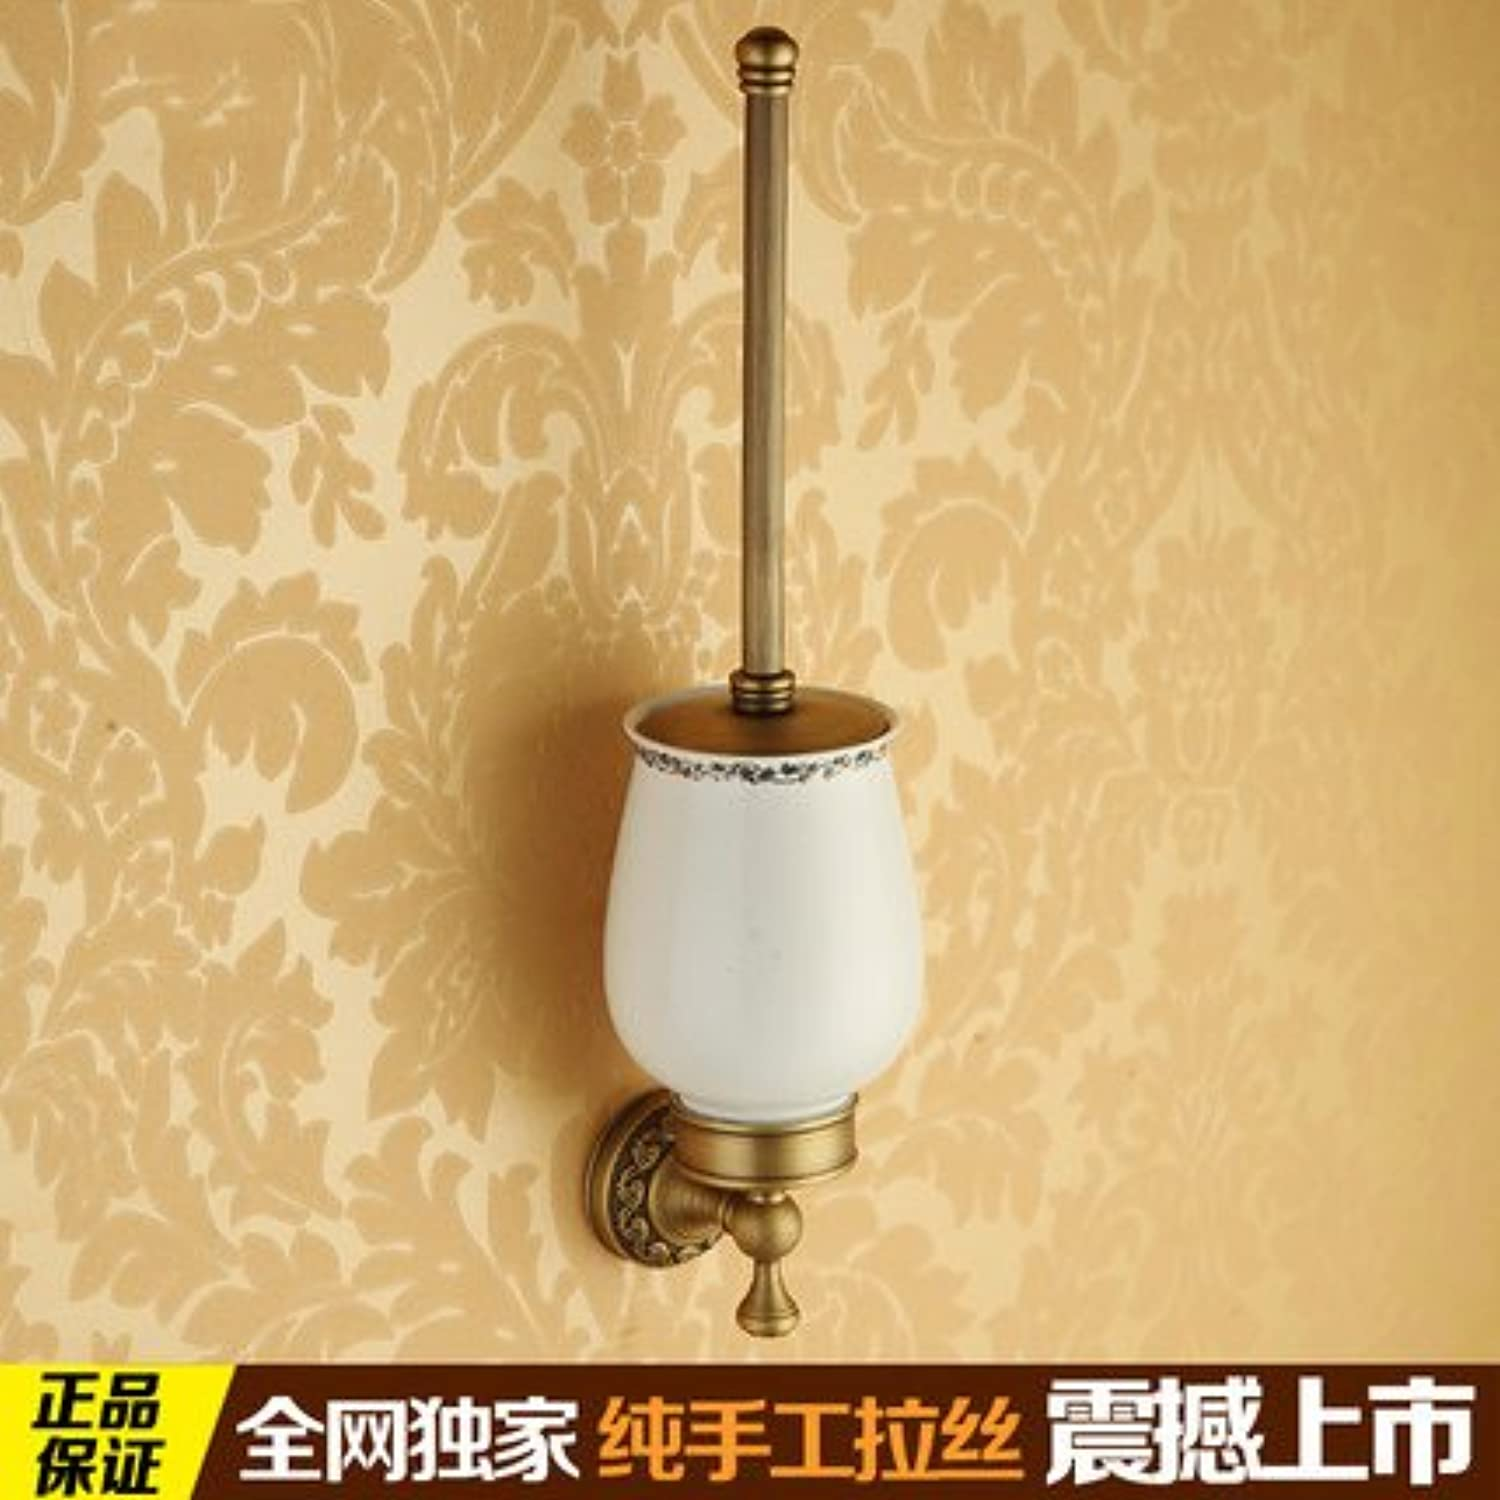 Bathroom copper antique ceramic toilet brush holder-@wei